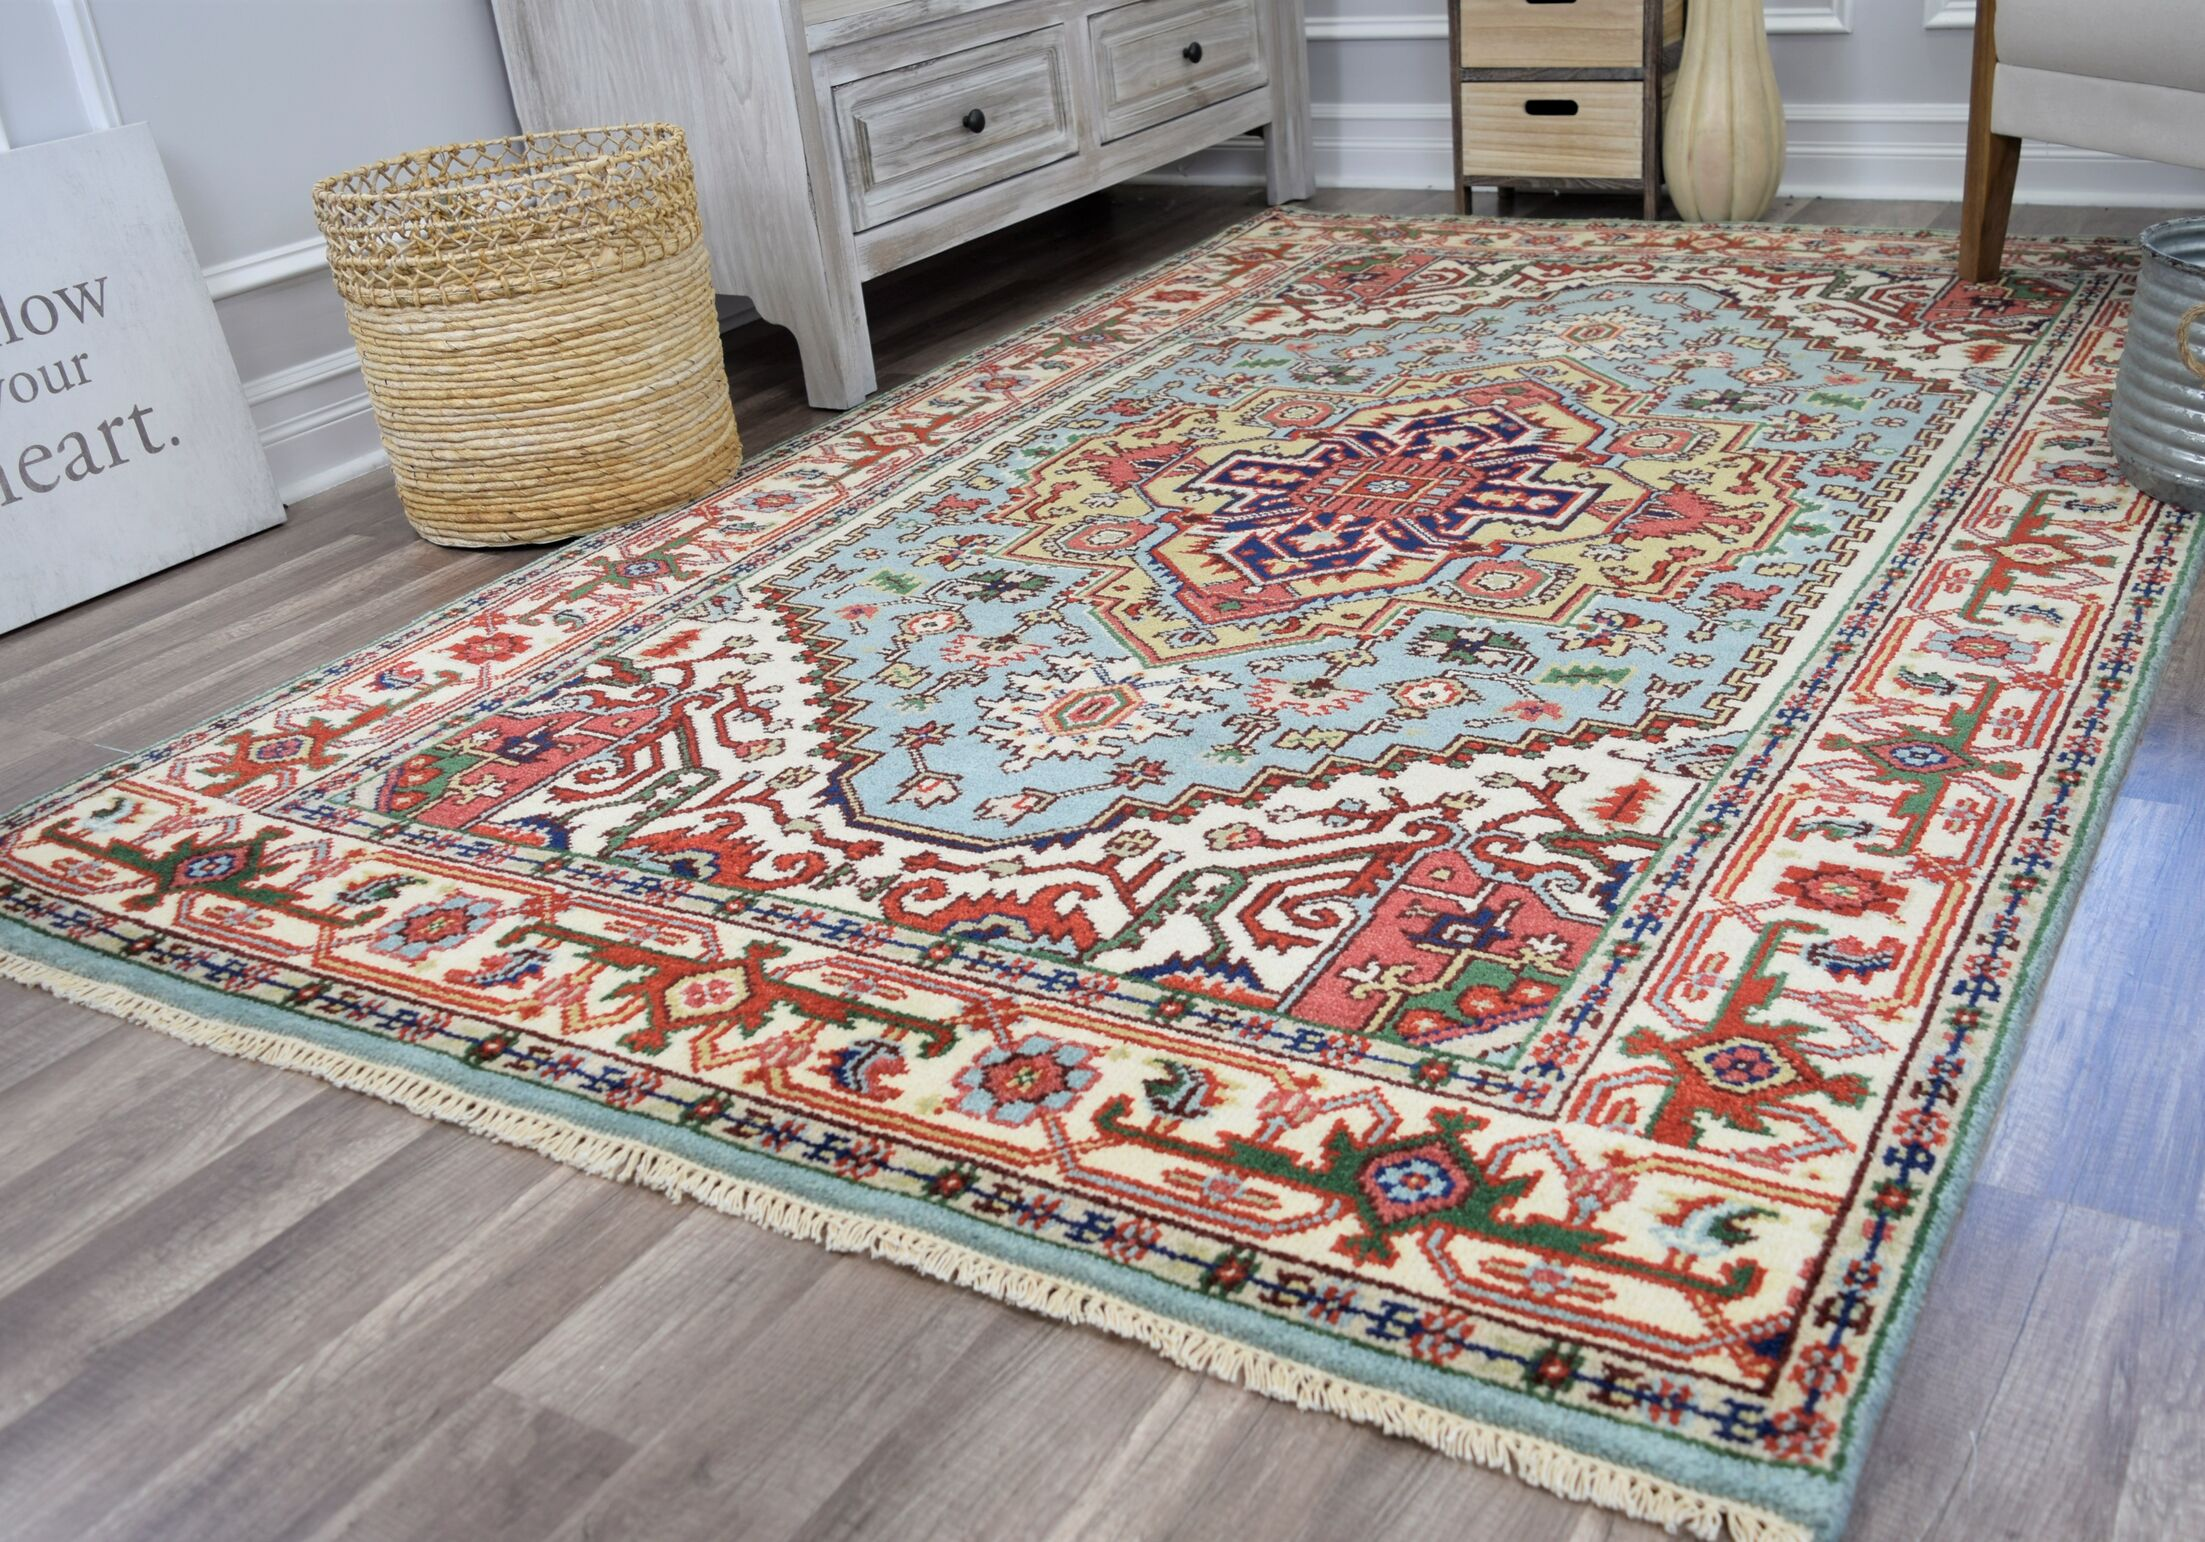 Oriole Hand-Knotted Wool Light Blue/Beige Area Rug Rug Size: Rectangle 5' x 8'